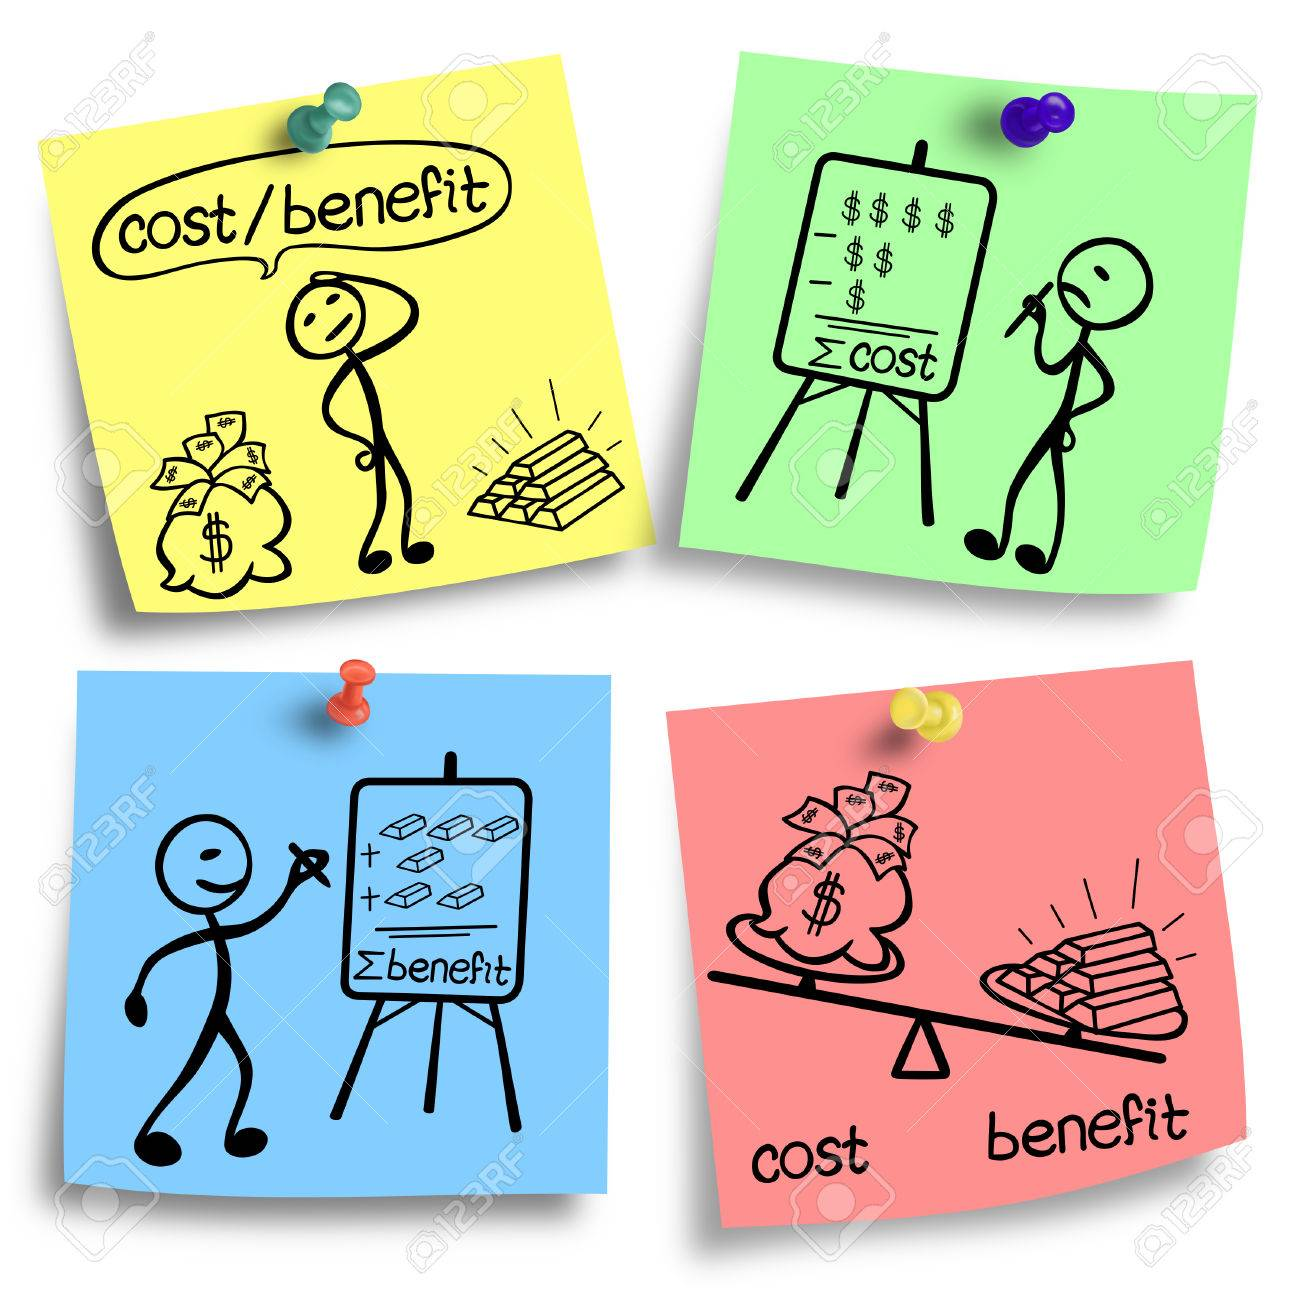 illustration of cost-benefit analysis definition explained in